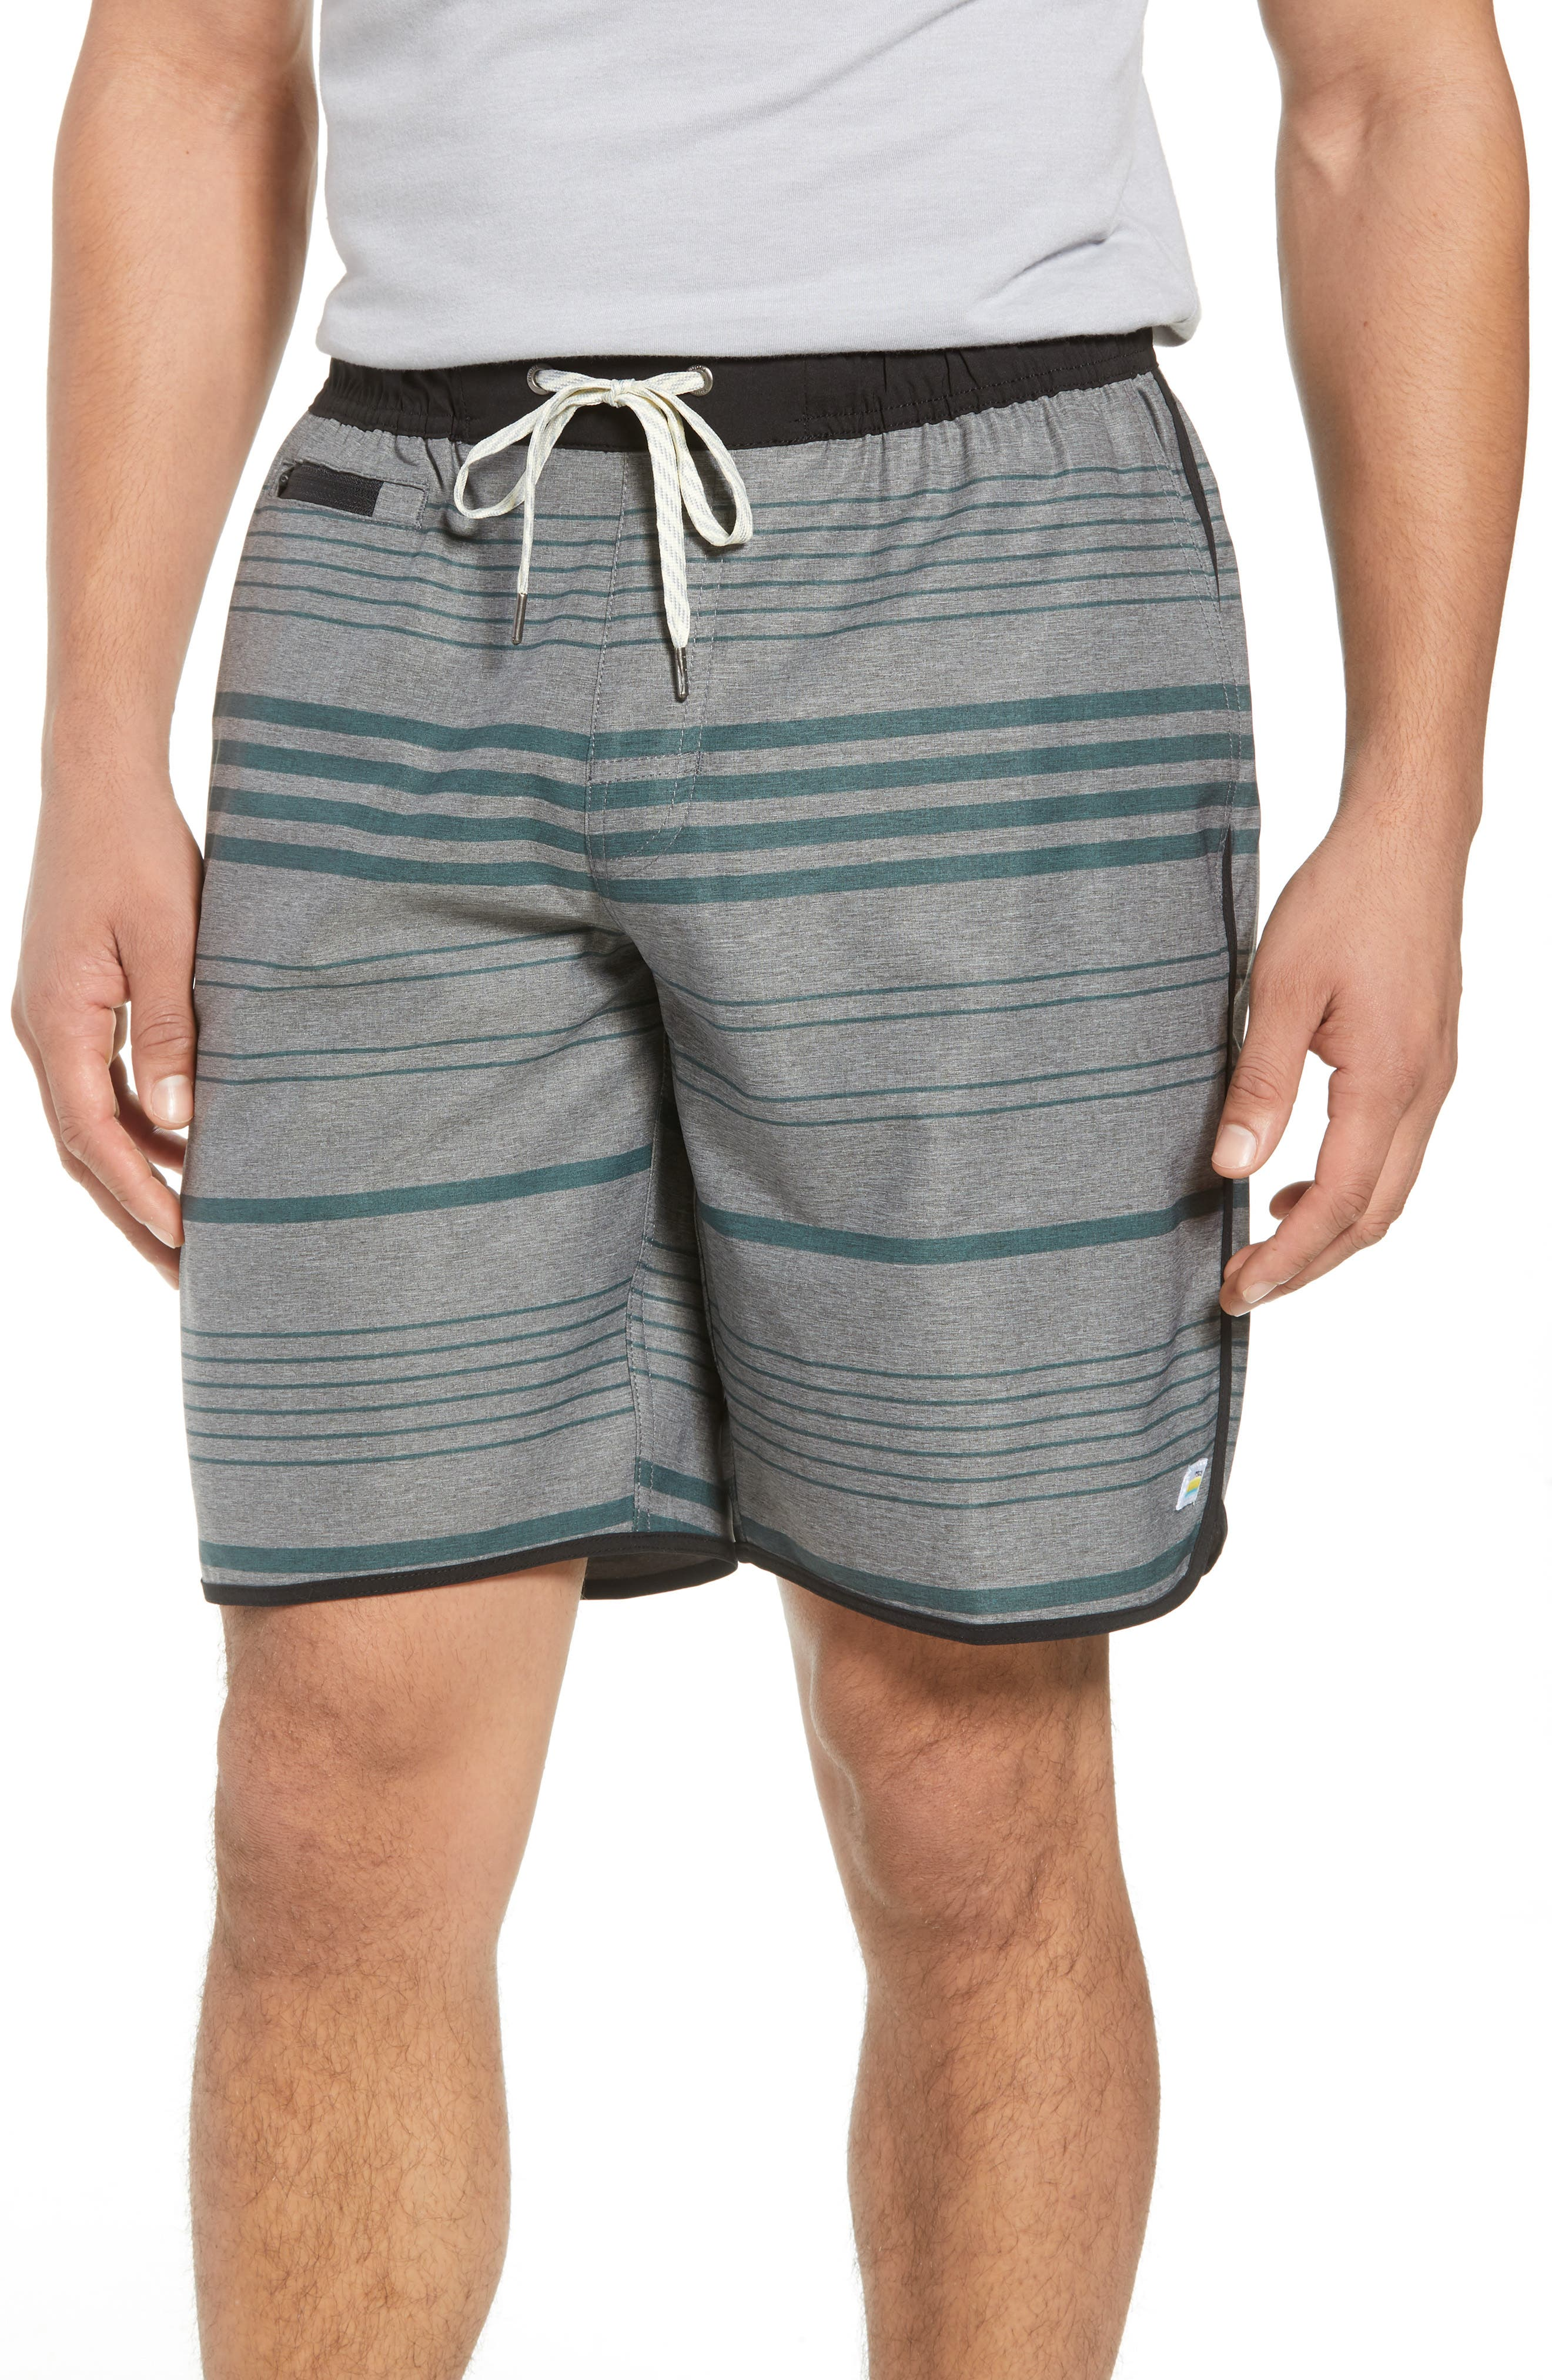 VUORI, Banks Performance Hybrid Shorts, Main thumbnail 1, color, CANYON MICRO STRIPE